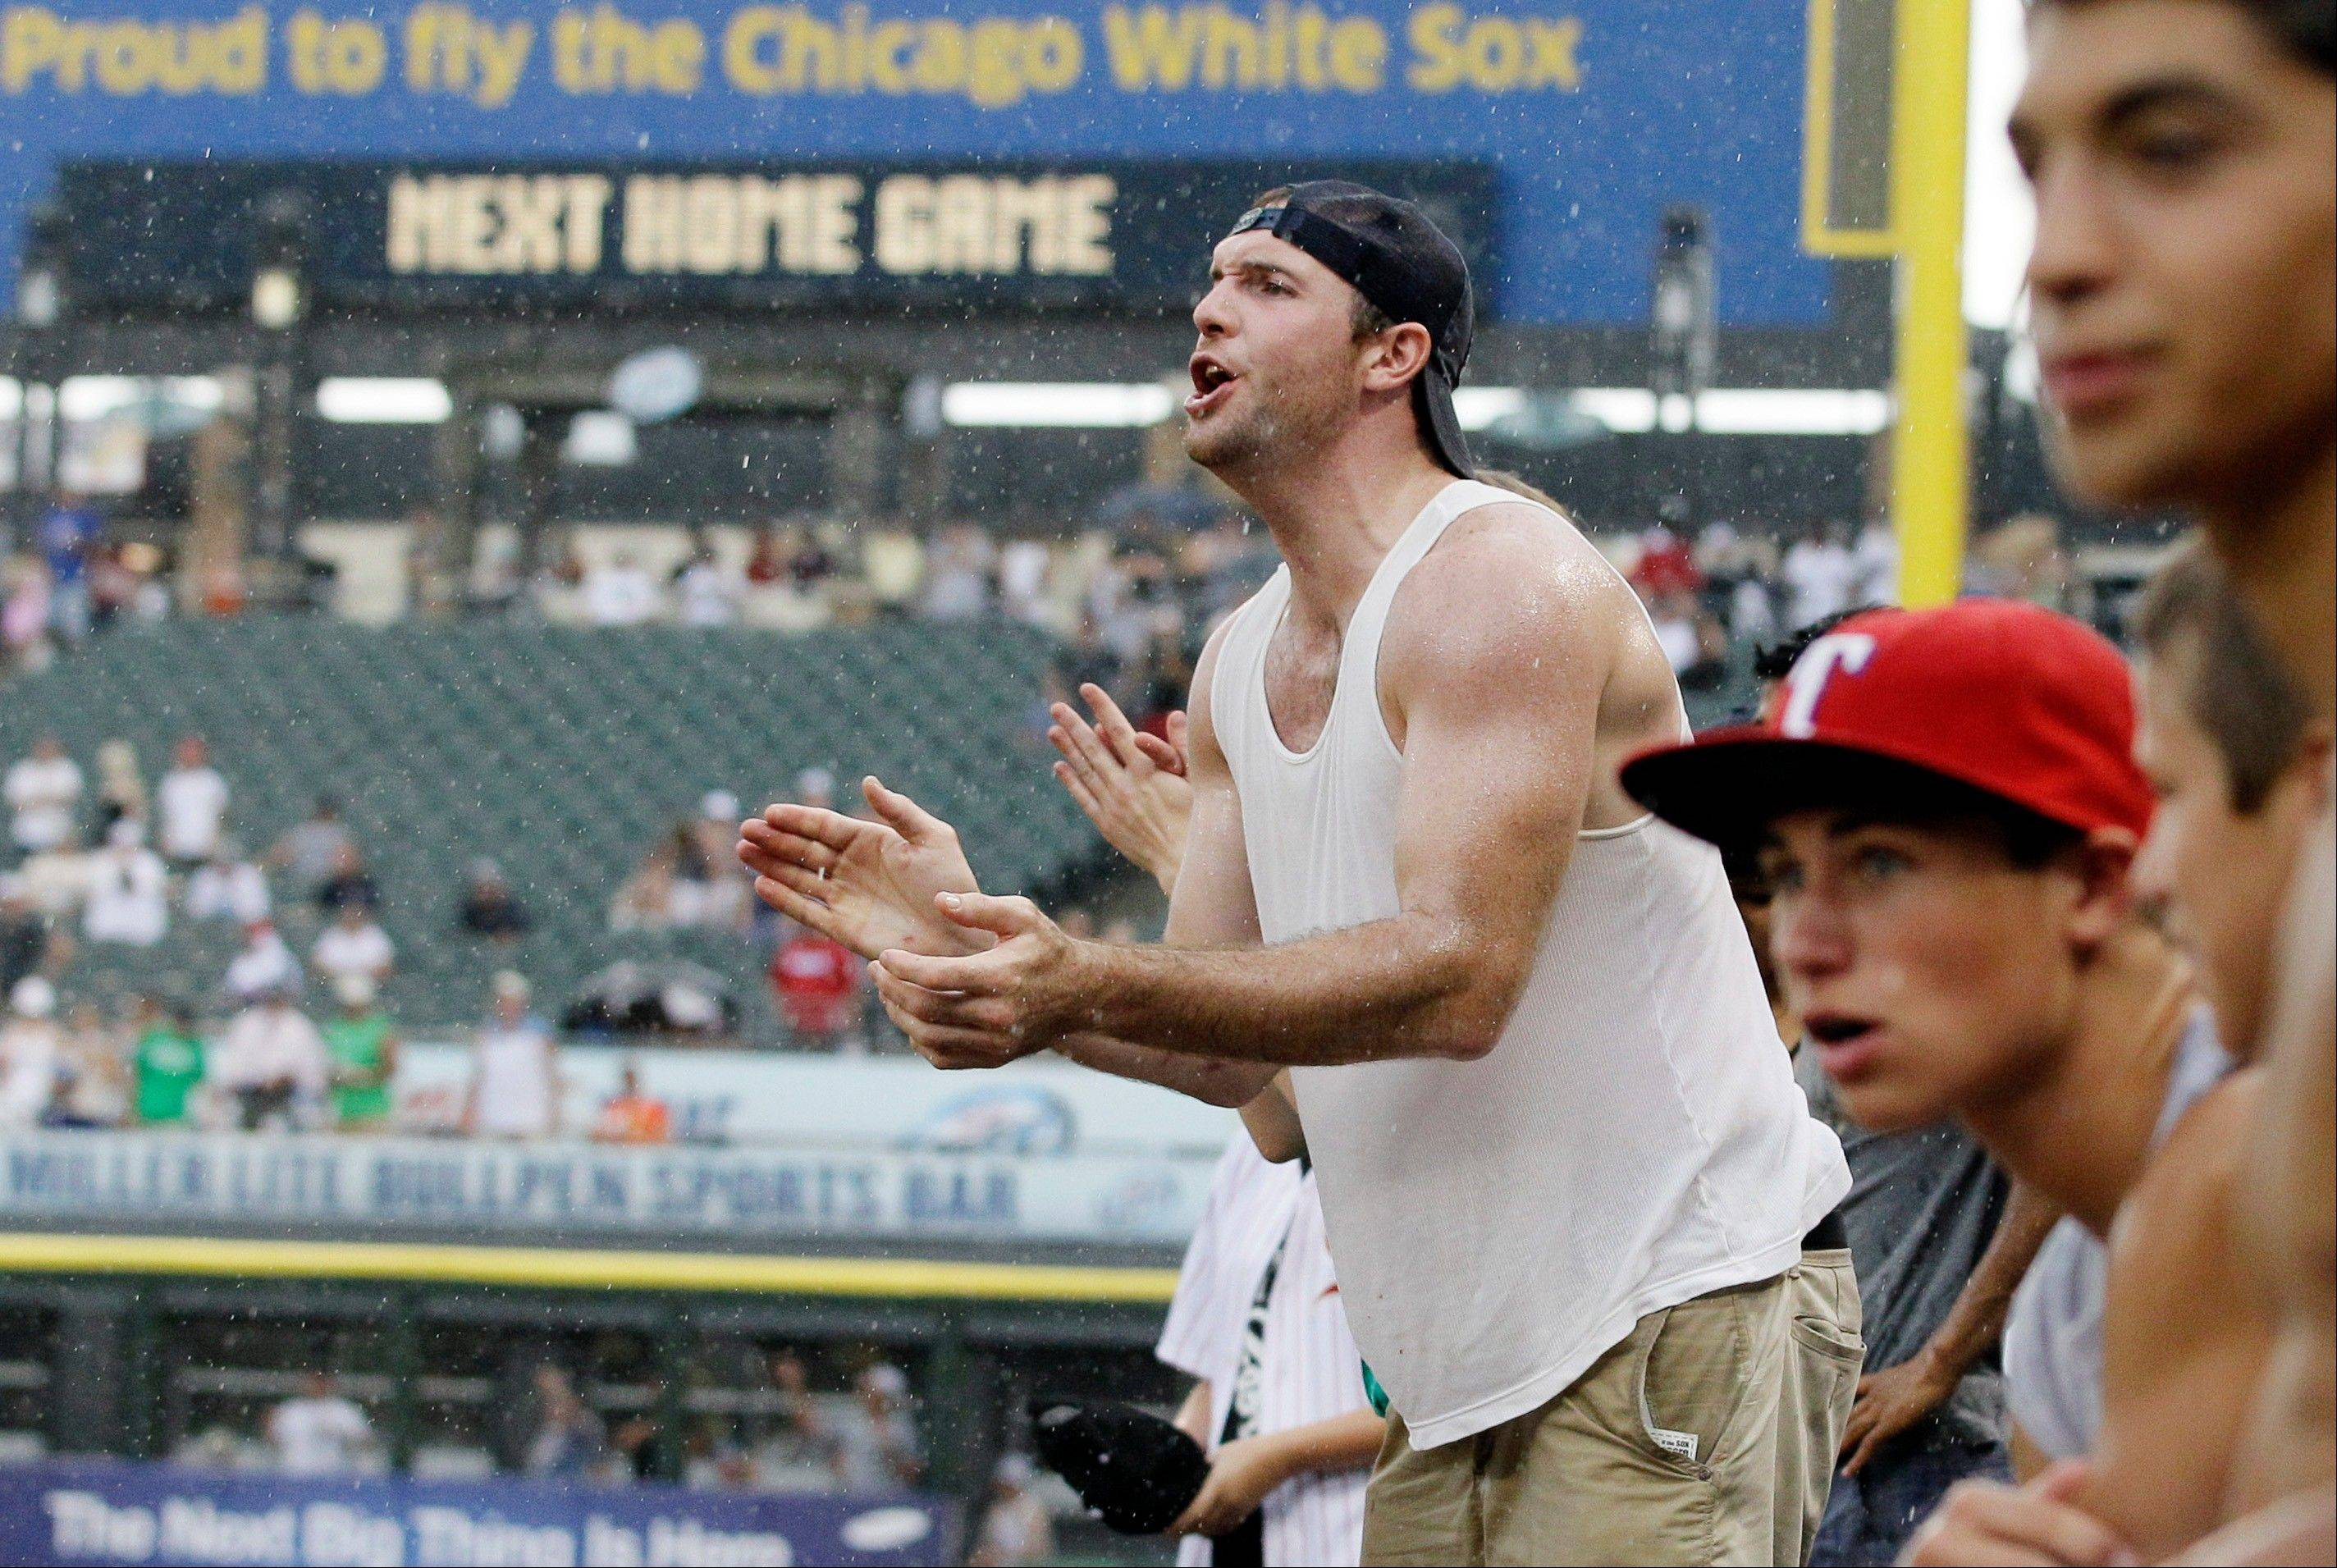 With temperatures topping 100 degrees, a White Sox fan still had the energy to get on his feet in the ninth inning as the Sox held on to beat the Texas Rangers 2-1 Thursday and sweep the club with the best record in baseball.